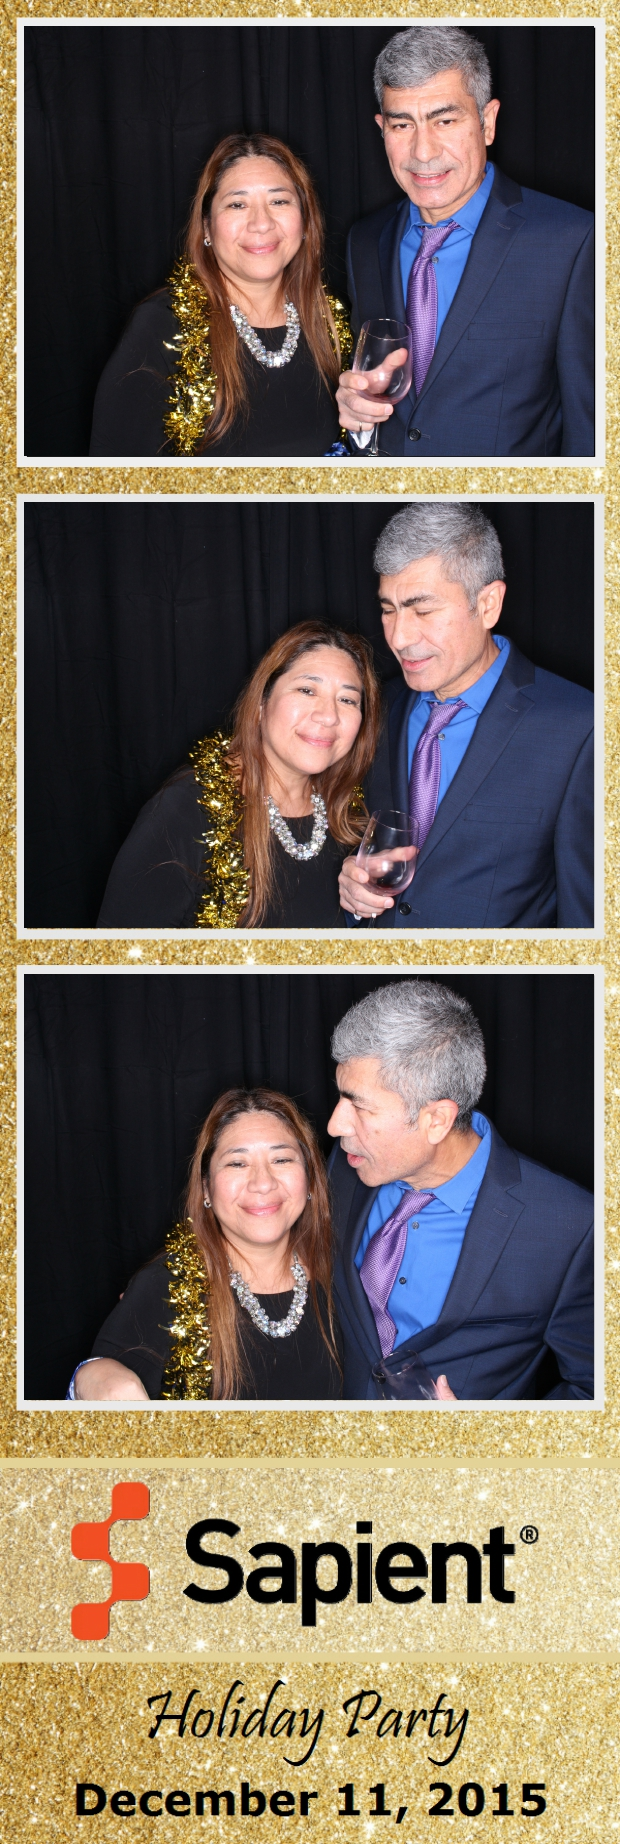 Guest House Events Photo Booth Sapient Holiday Party (10).jpg